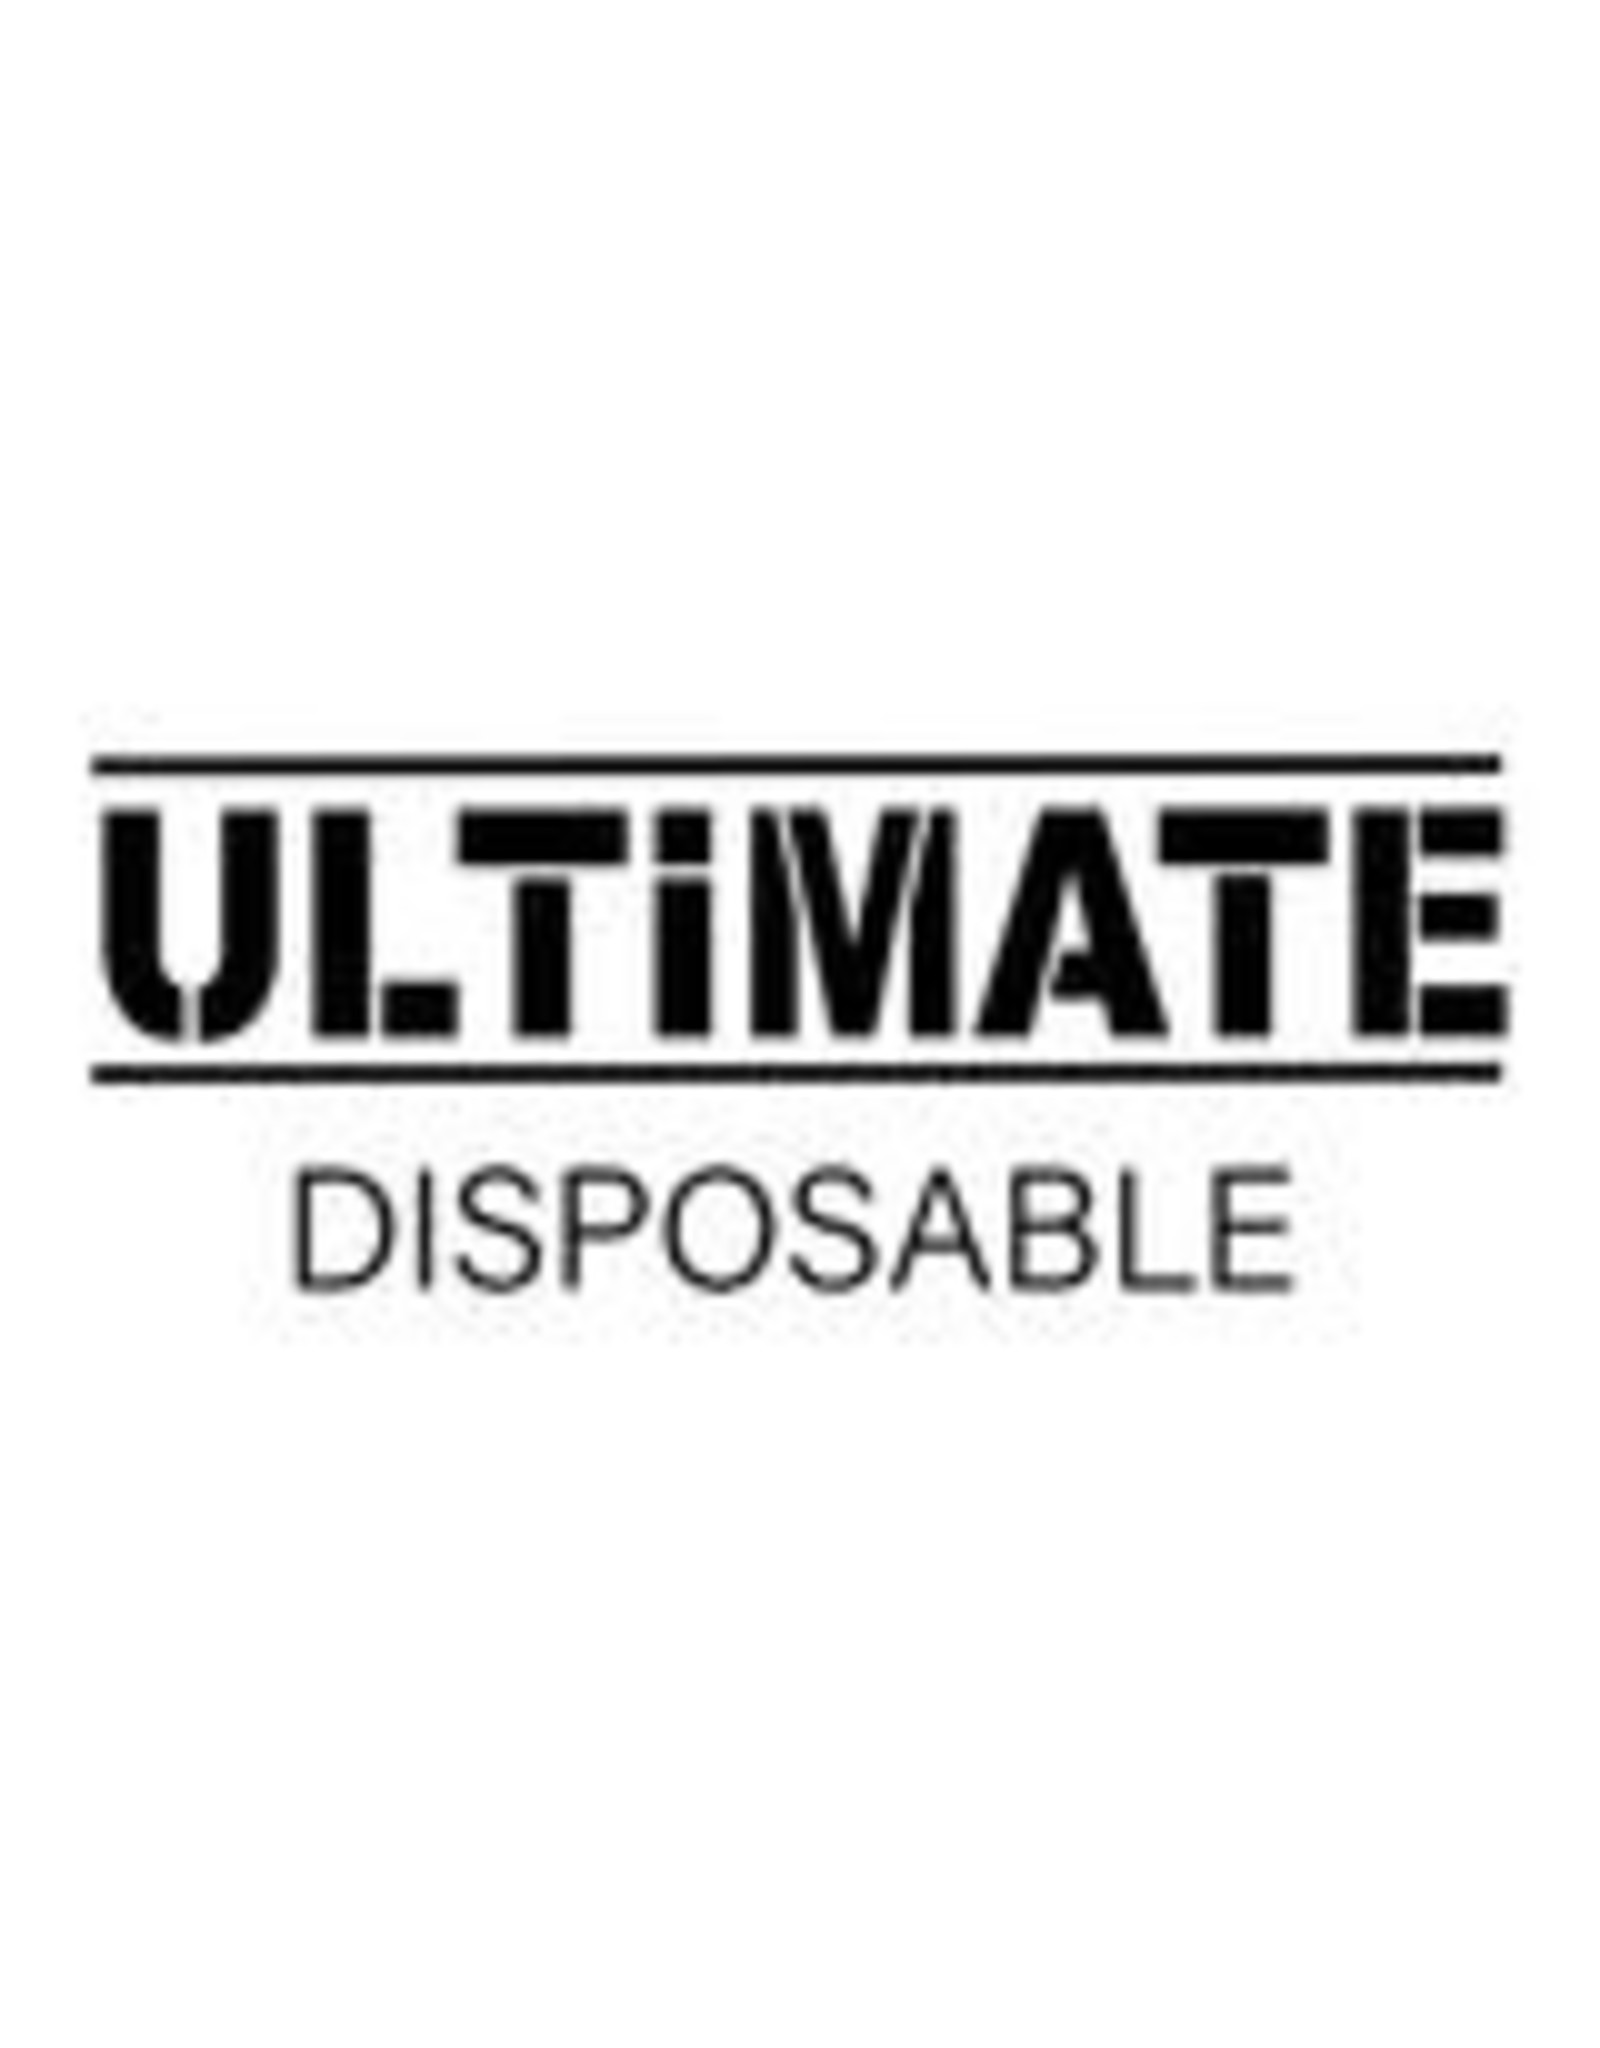 Ultimate Disposable